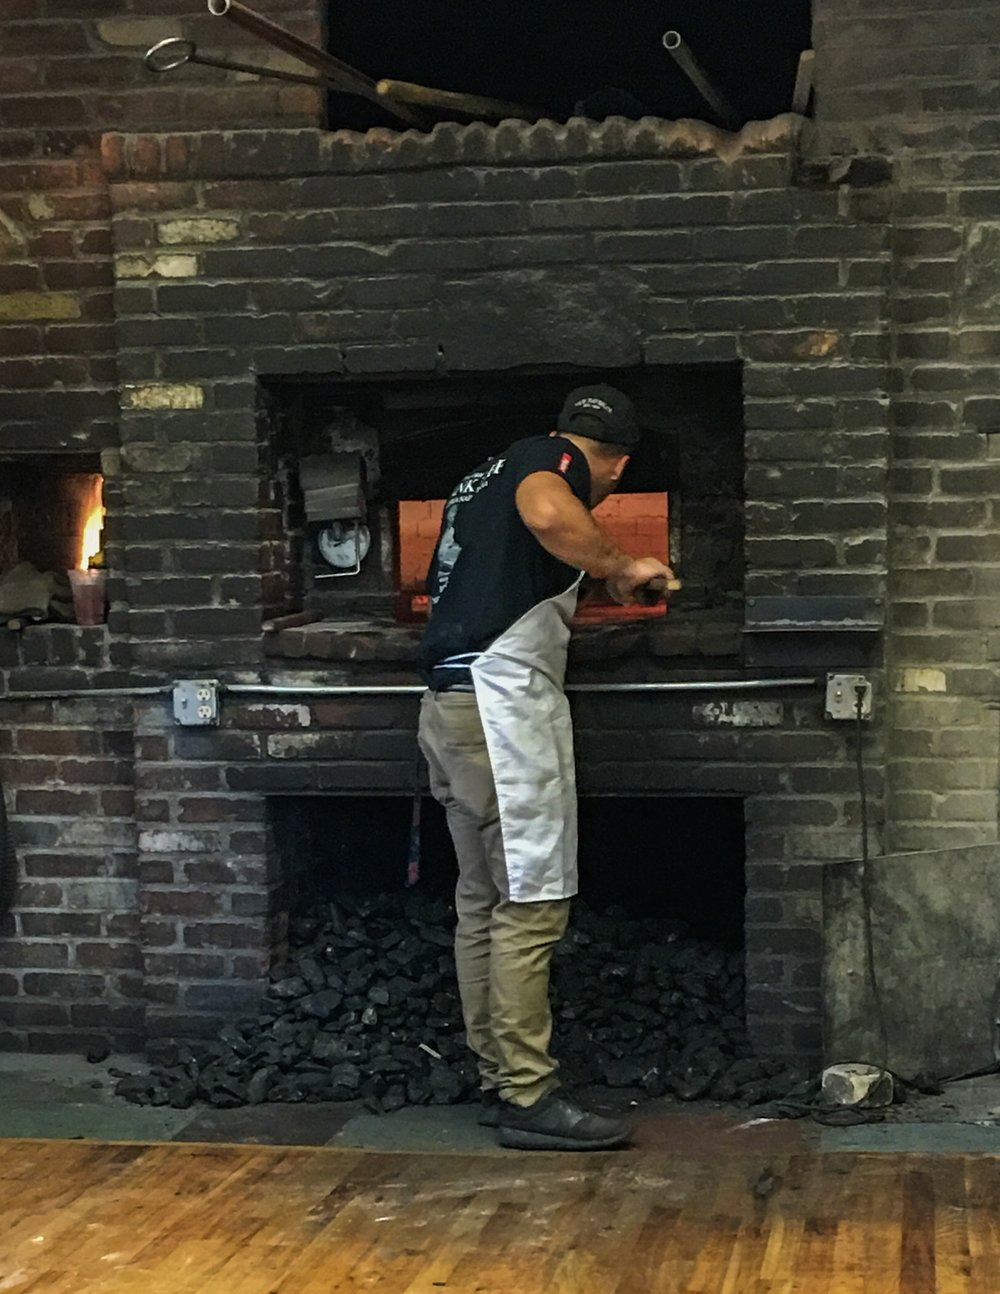 Working the oven at Frank Pepe's. This New Haven, CT landmark has been producing out-of-this-world pizza in the same spot since 1928.  If you ever have the chance to go, GO! The shrimp and fresh garlic white pizza I had was, without question, the best pizza I've ever had.